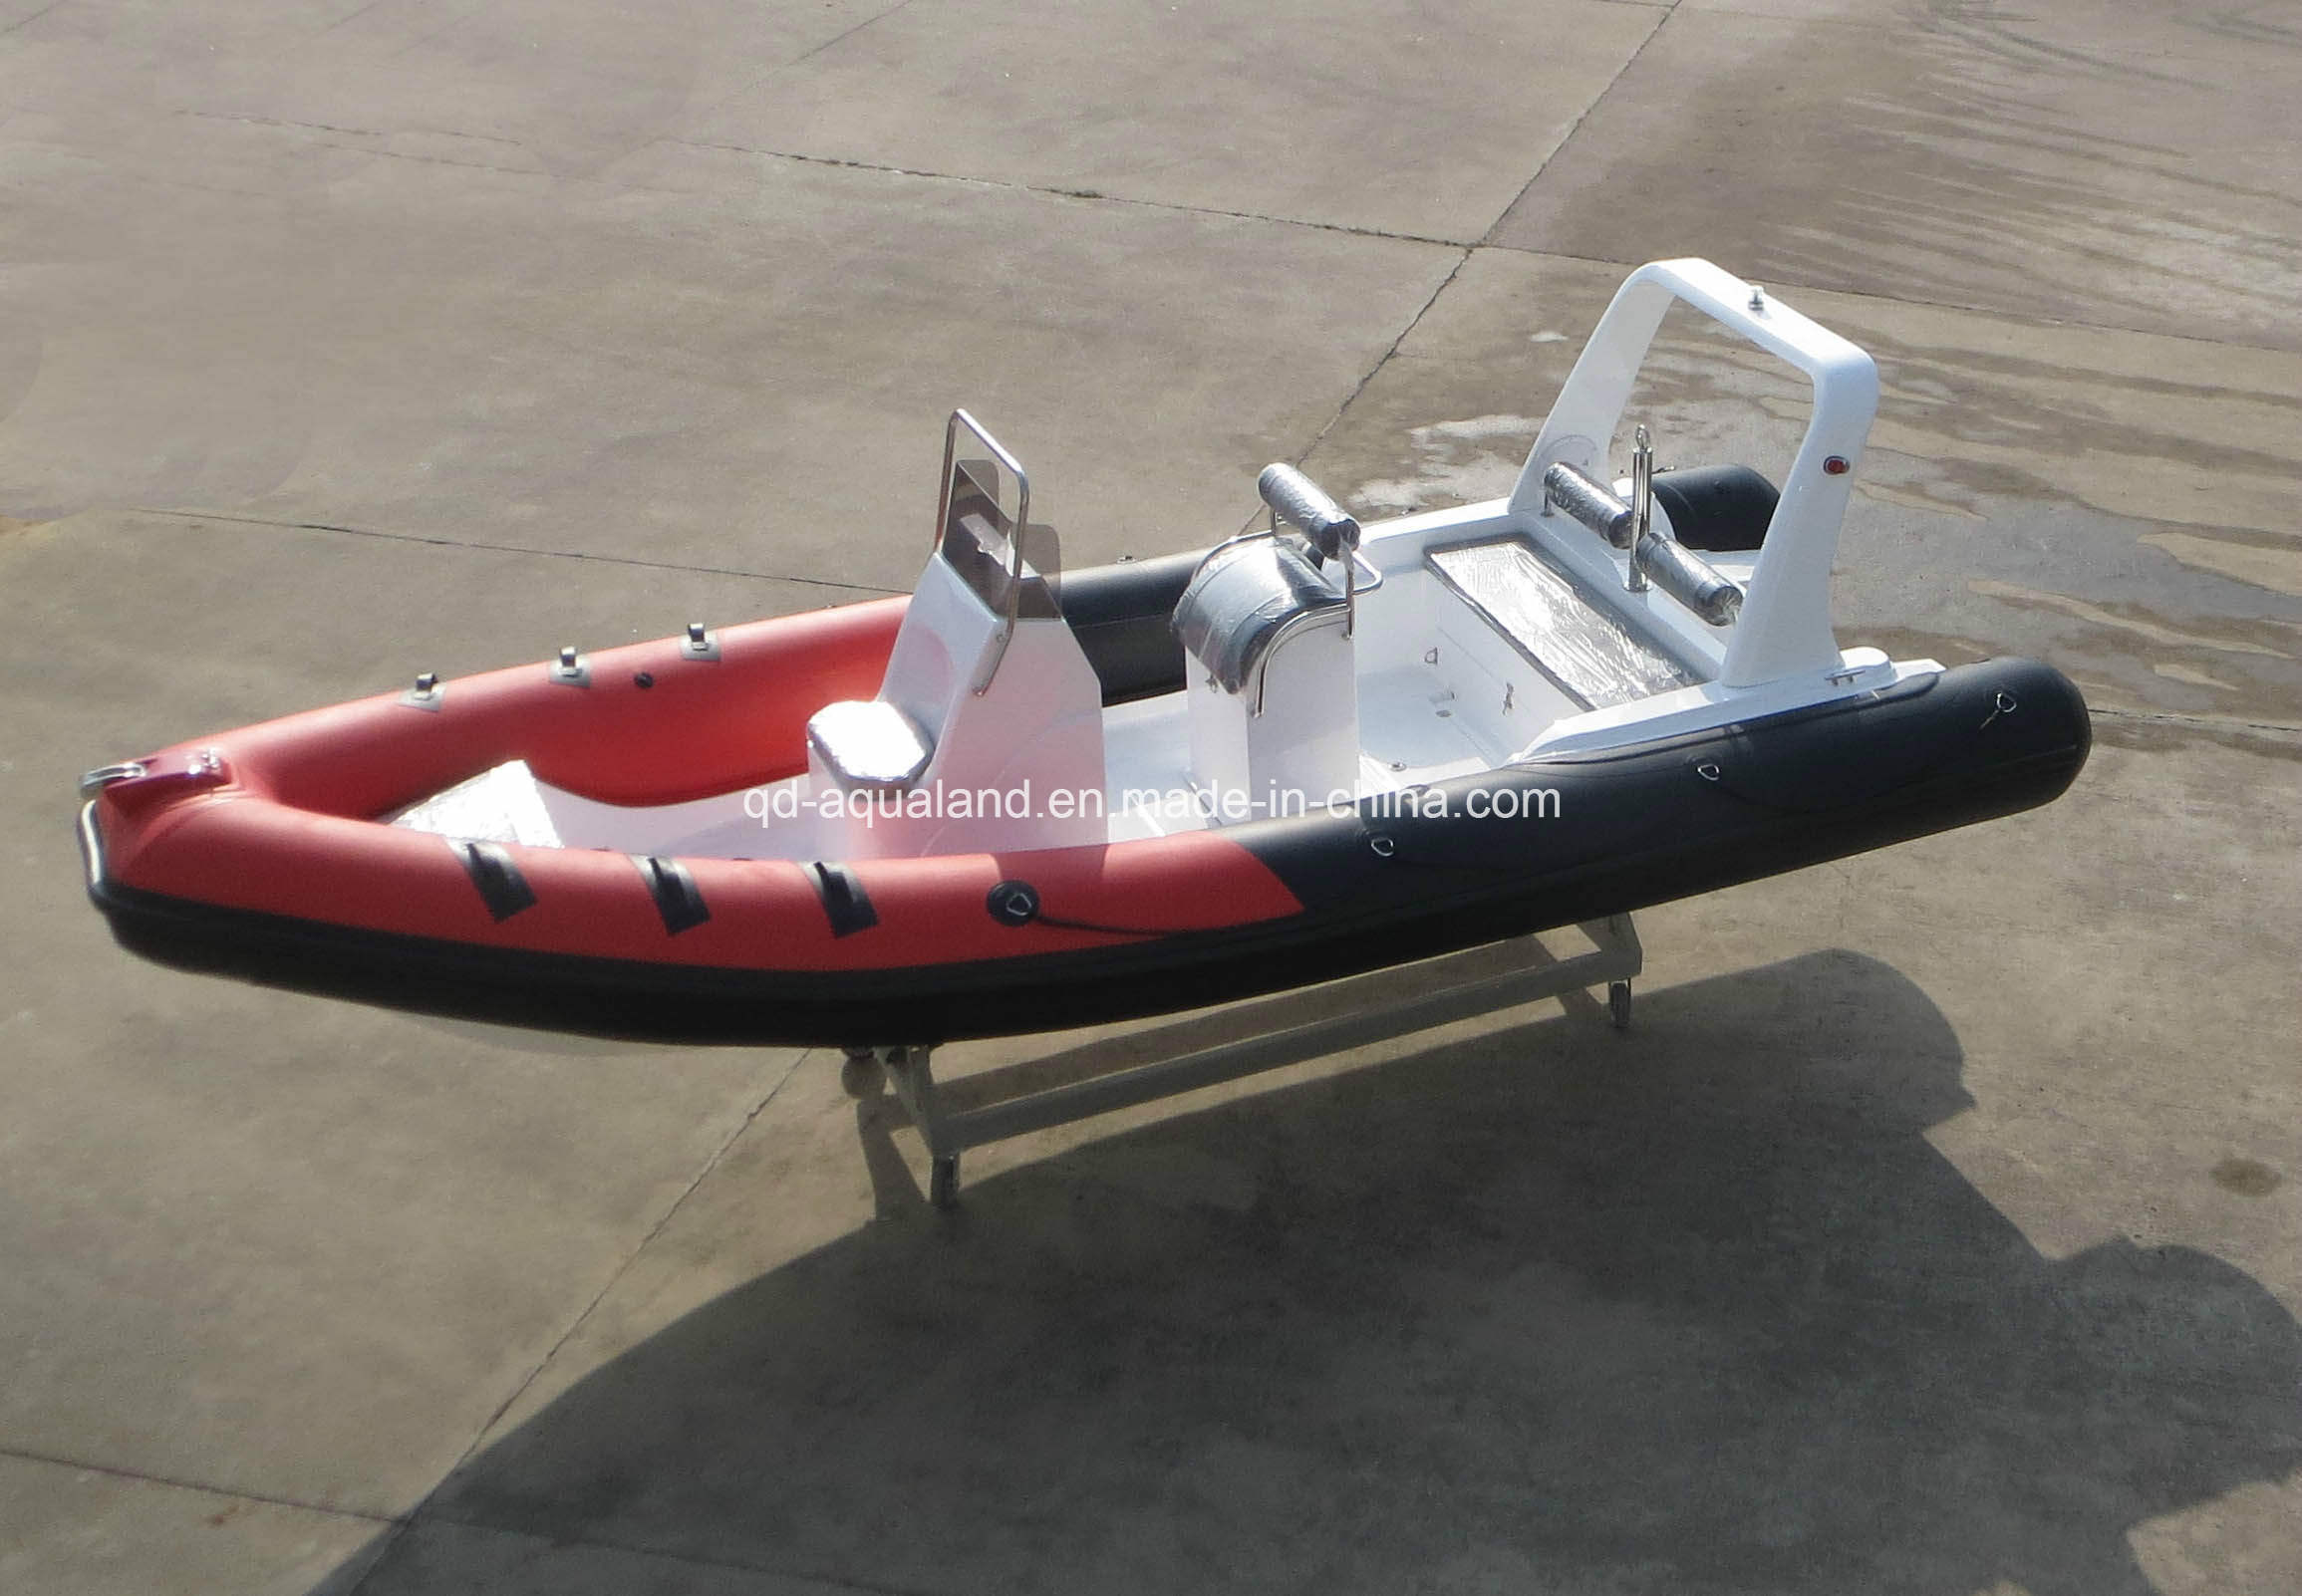 China Aqualand 20 Feet 6.2m Rigid Inflatable Fishing Boat/Rib Motor Boat/Speed Rescue/Patrol Boat (RIB620D)